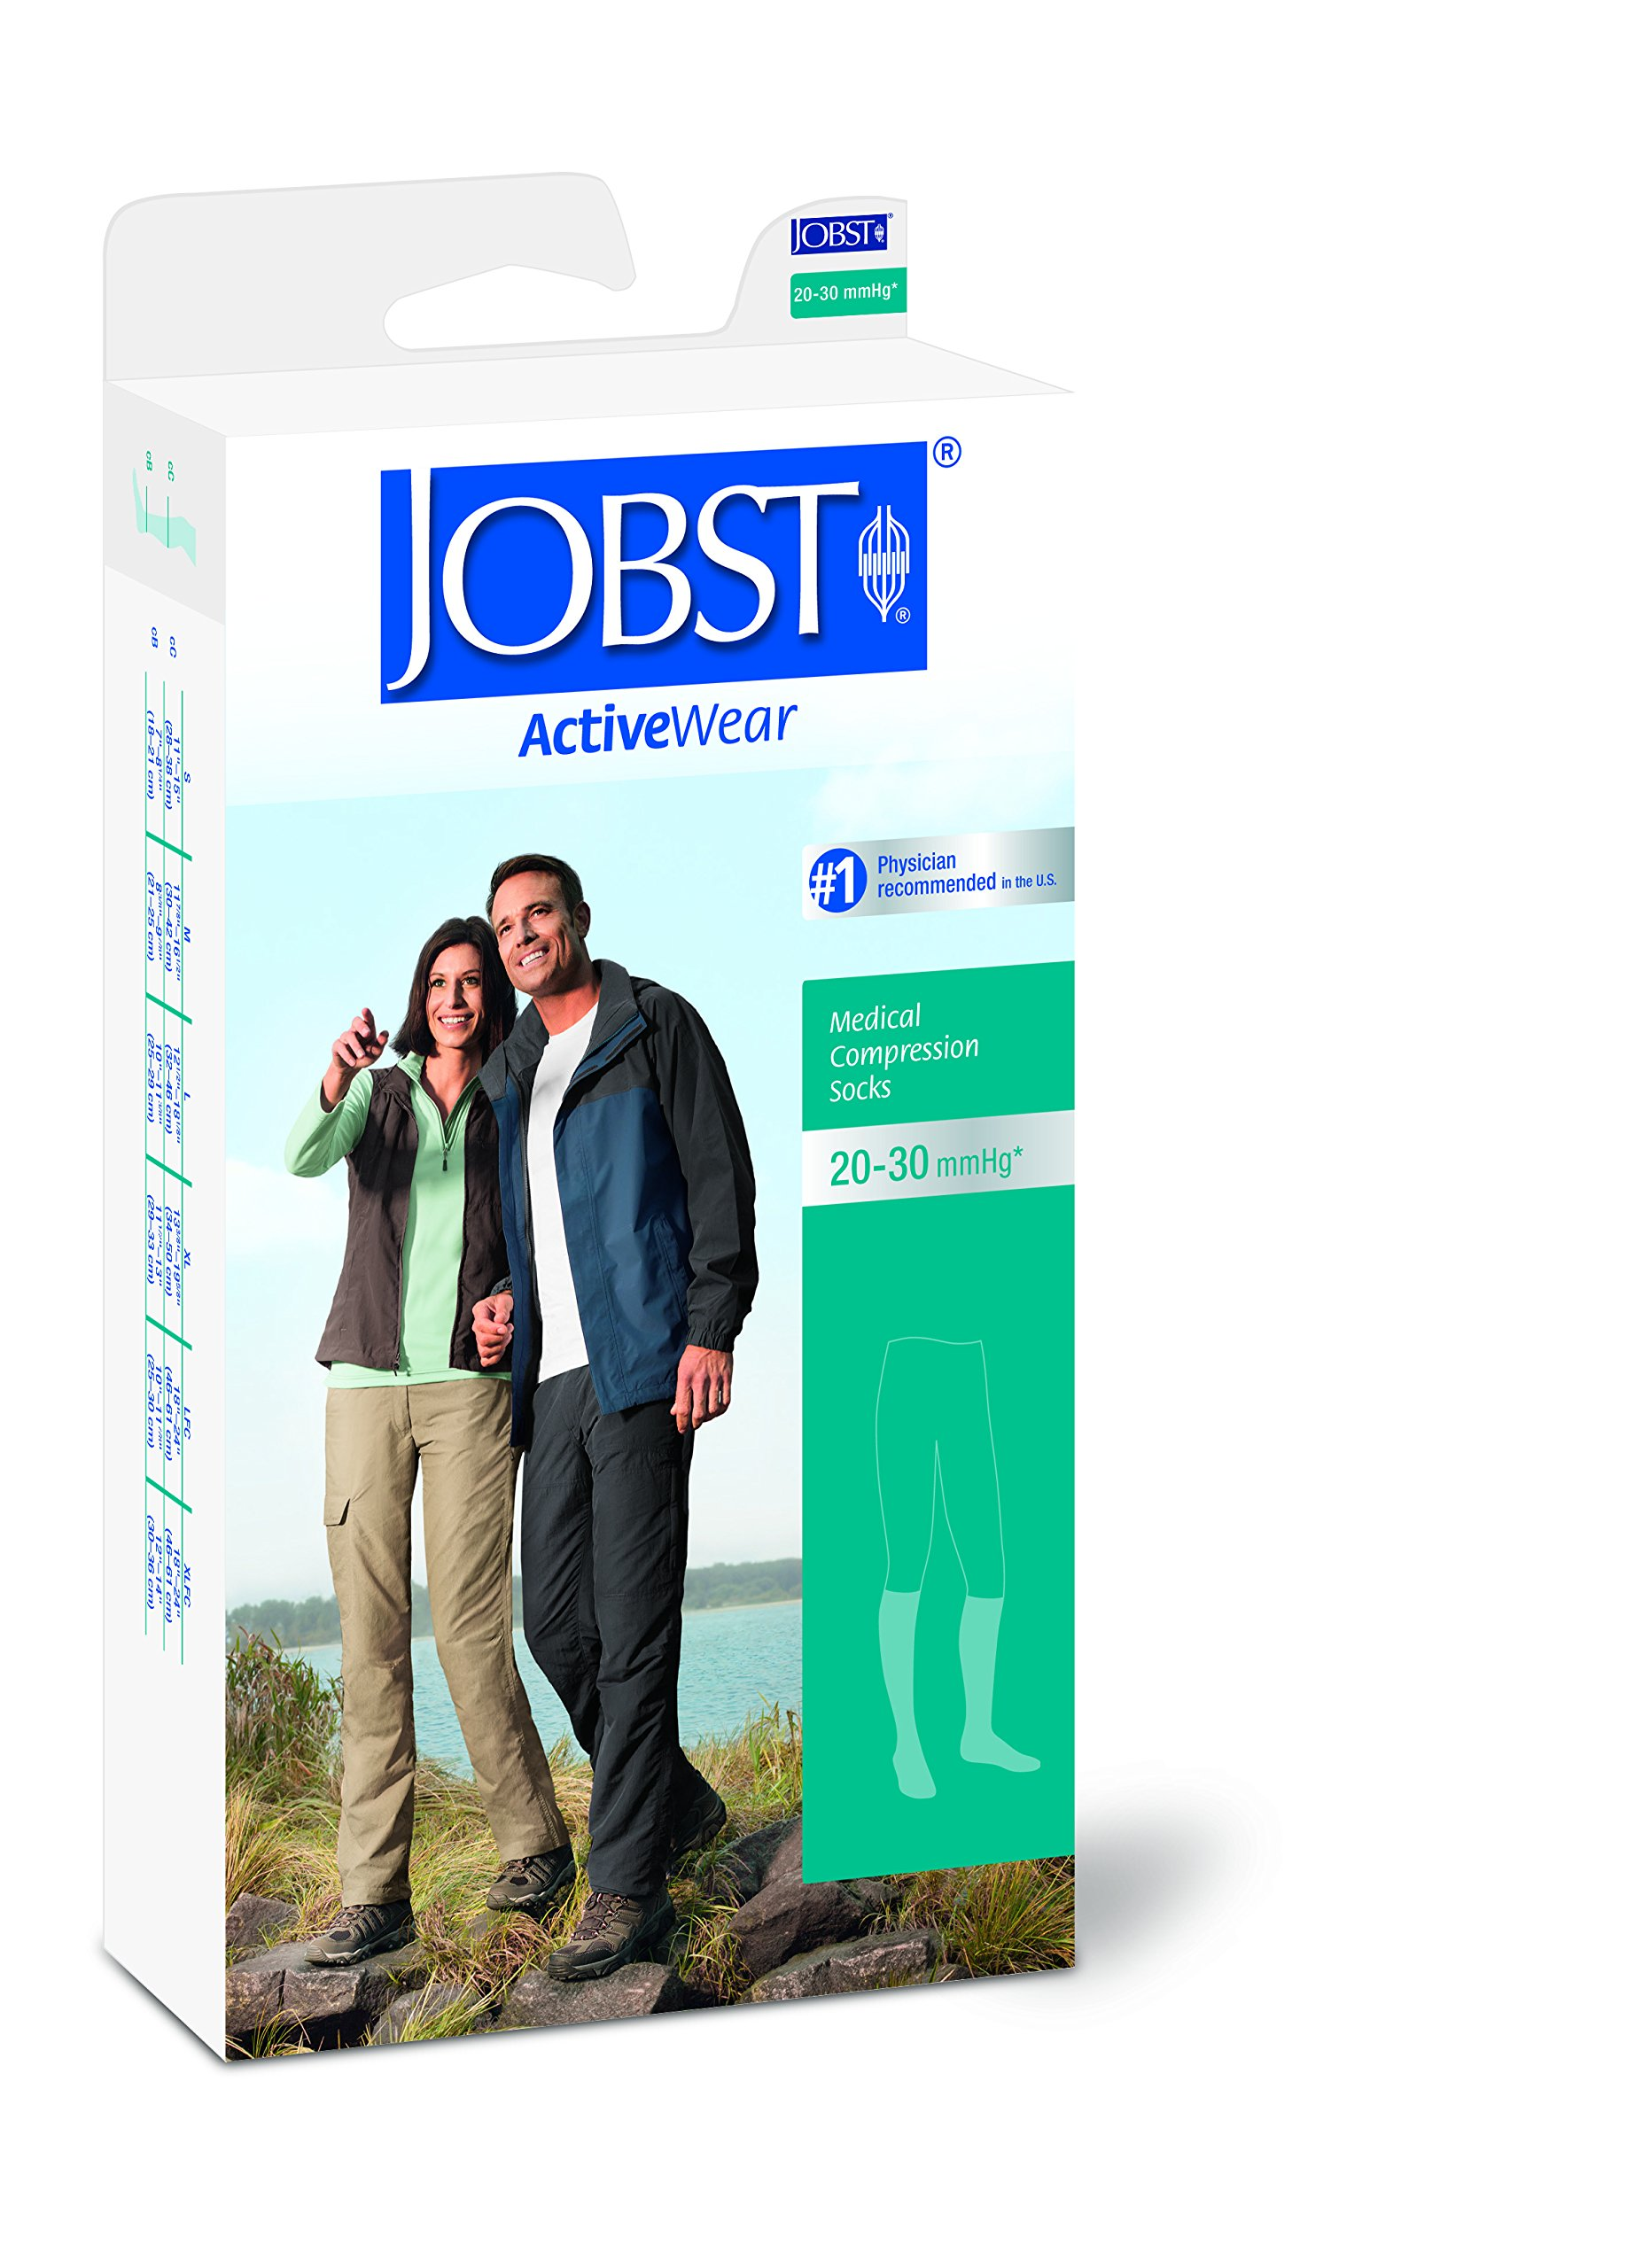 JOBST Activewear 20-30 mmHg Knee High Compression Socks, Large, Cool White by JOBST (Image #6)